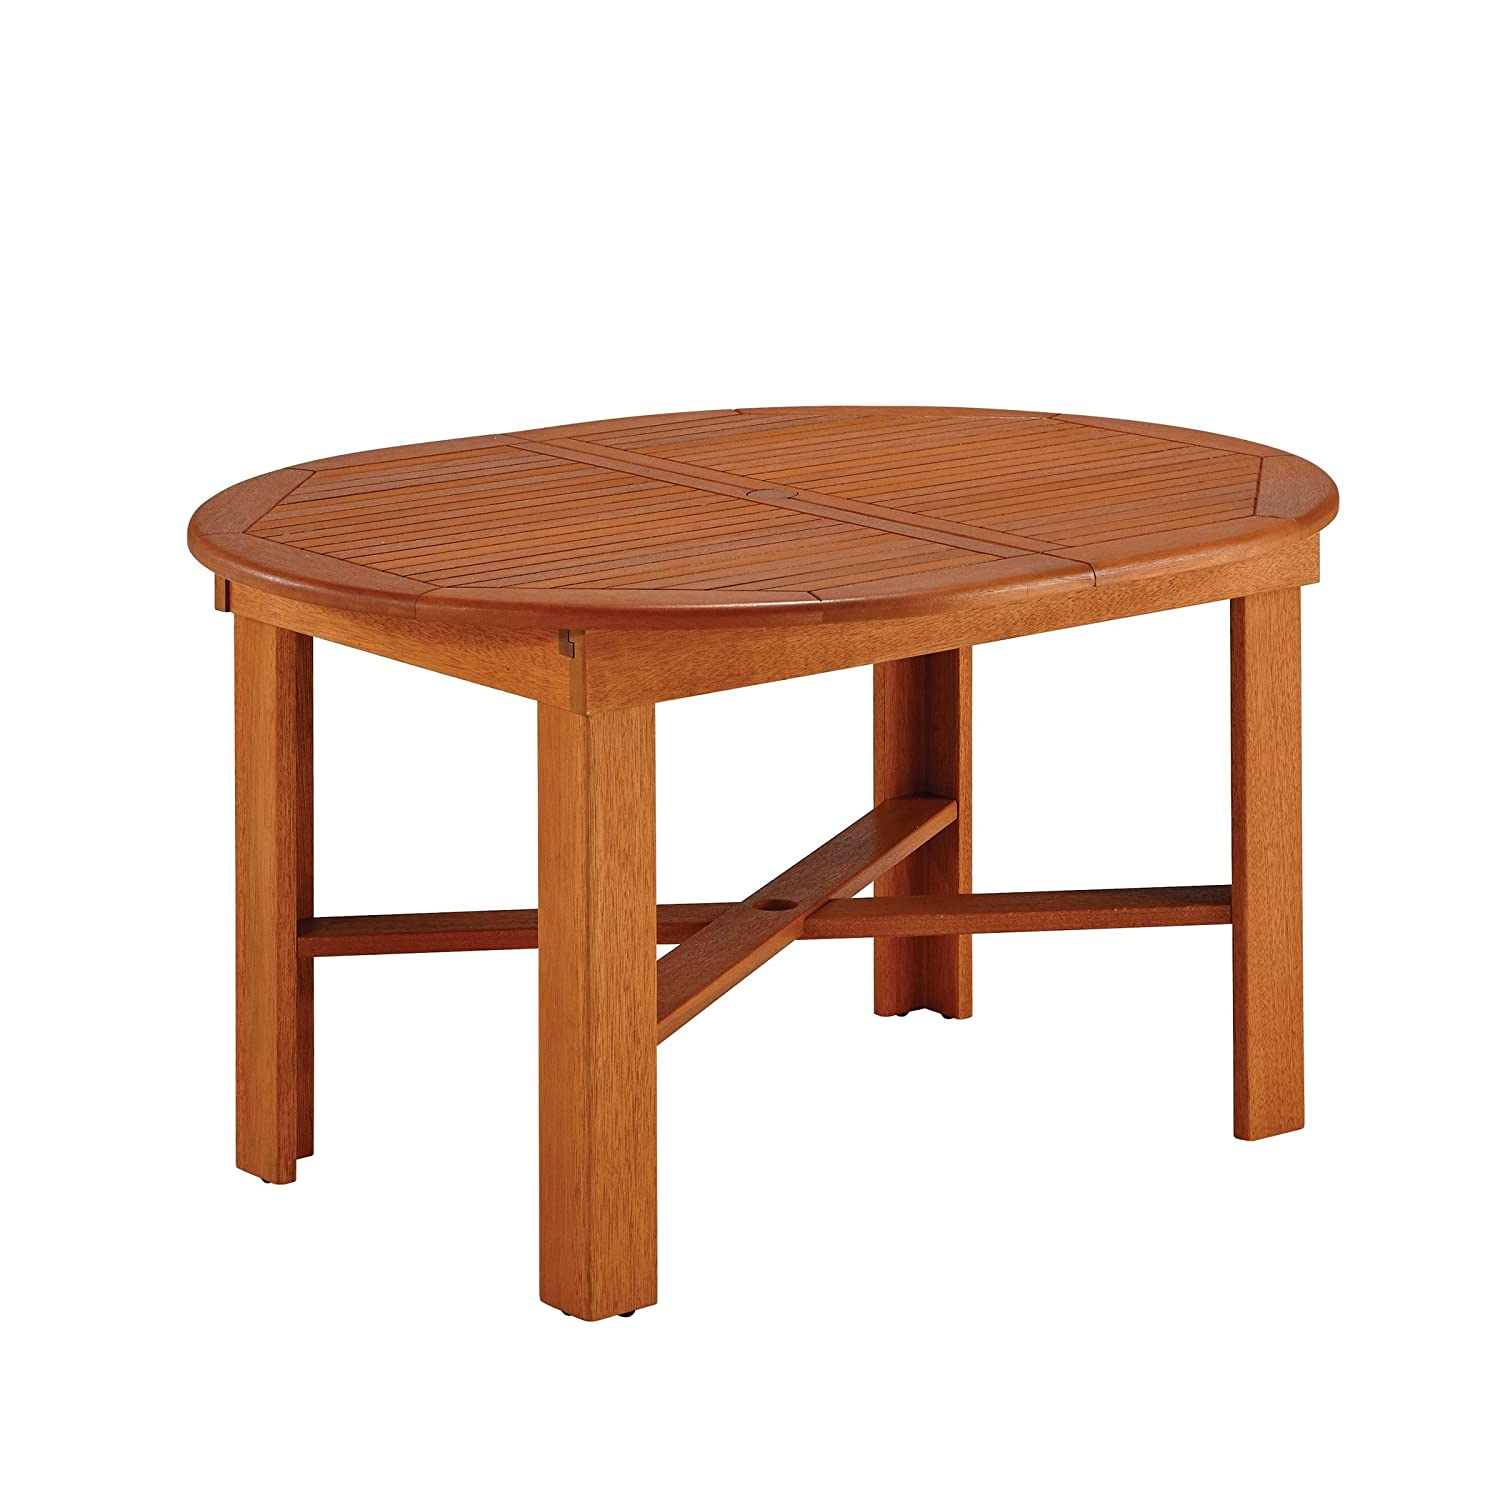 patio outdoors table bentley oval wooden charles capital dining hardwood furniture products